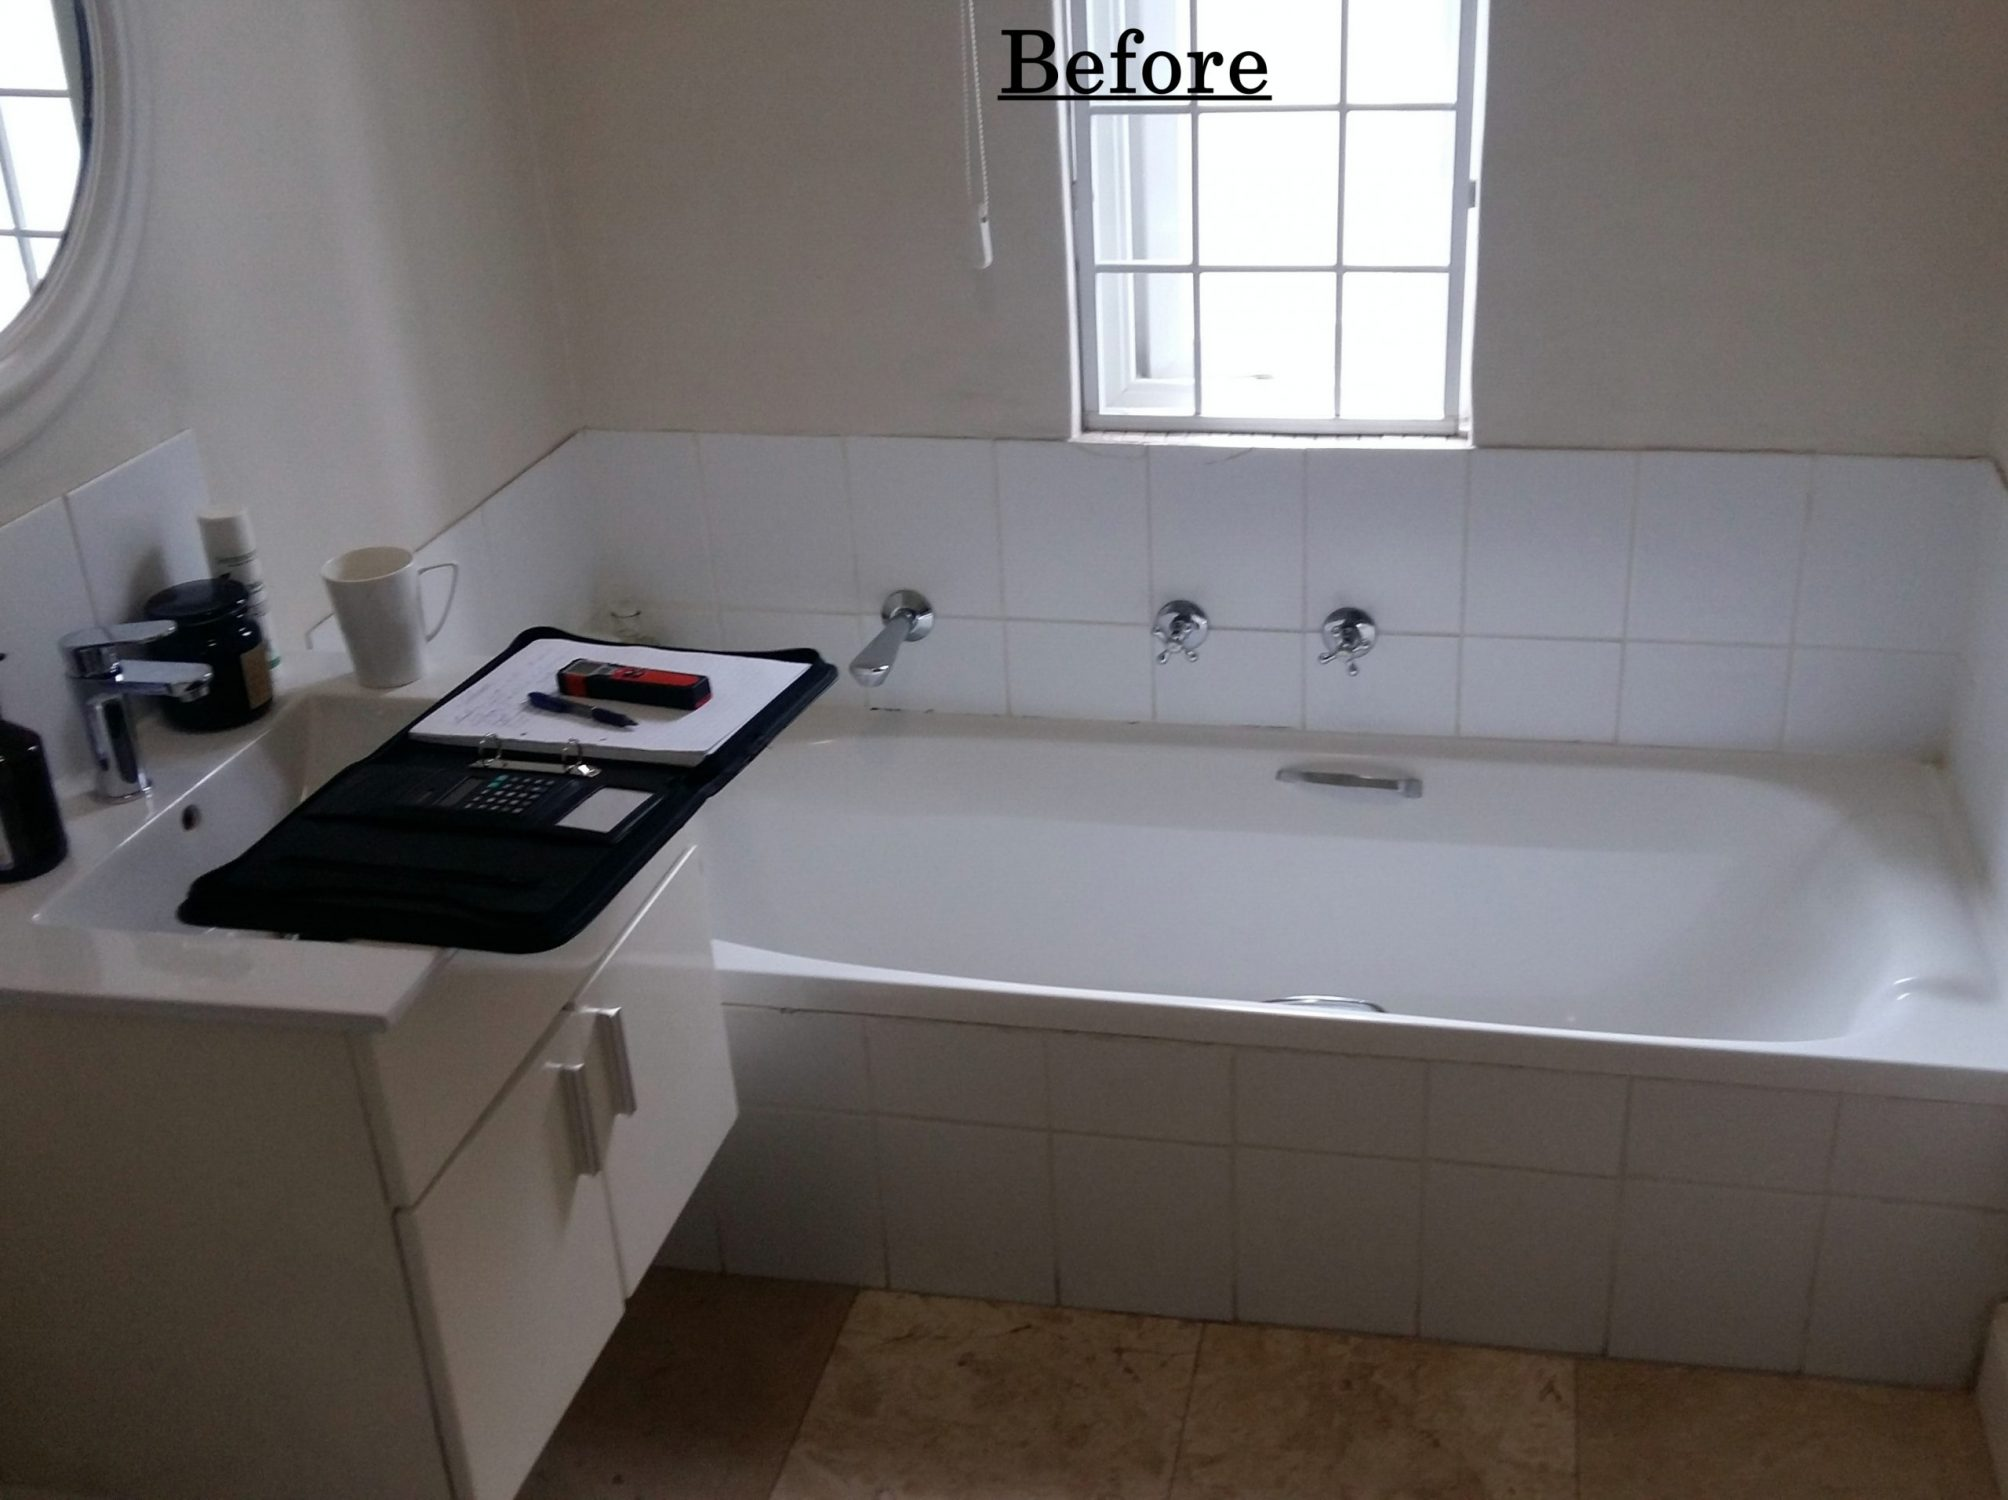 Bathroom Renovations Cape Town Before 1